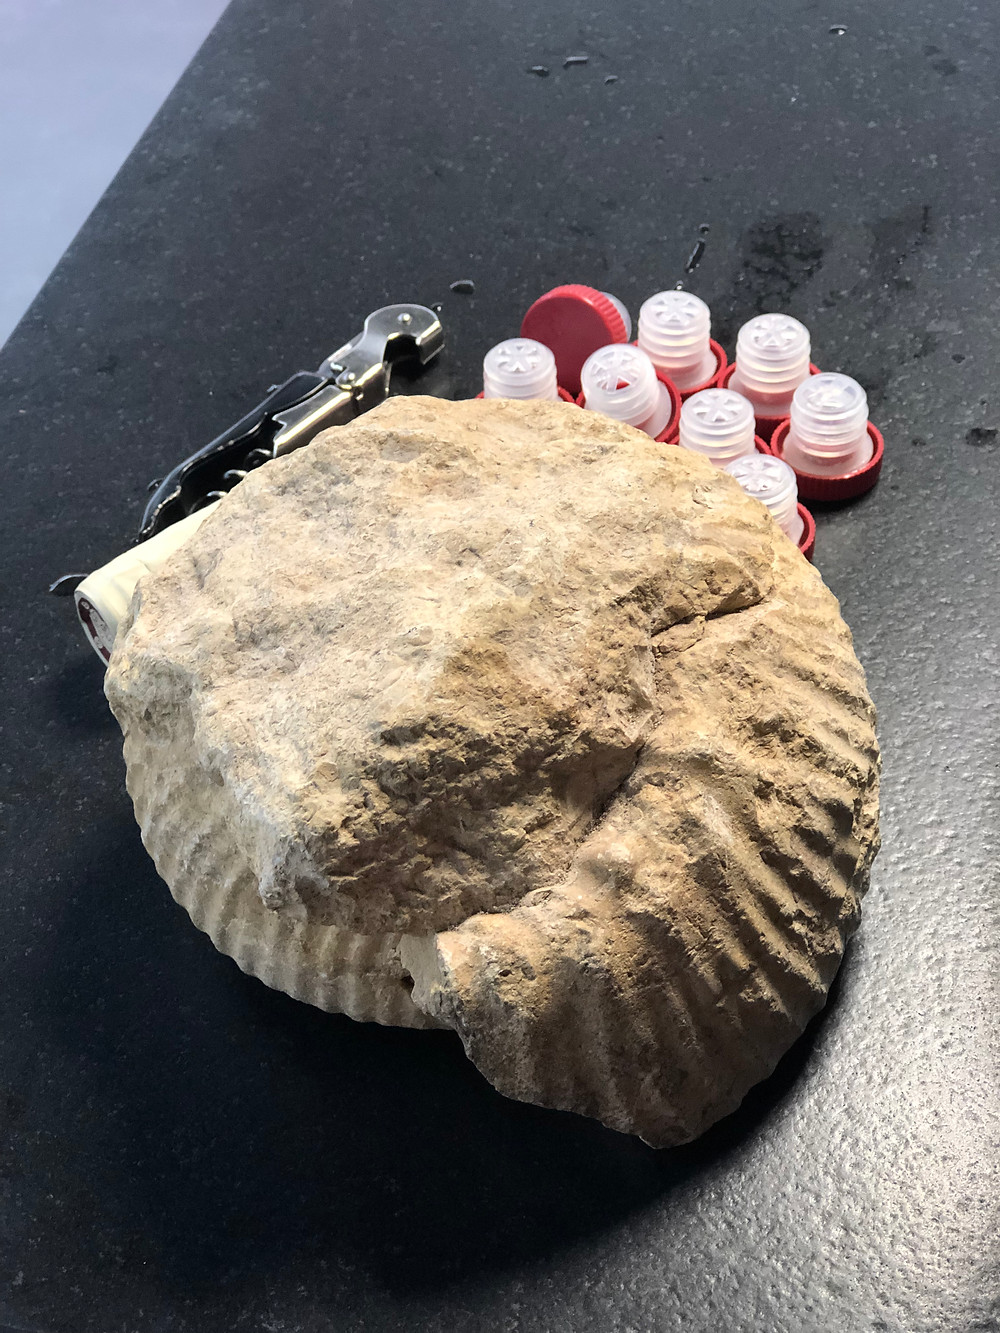 fossilized marl stones from Kimmeridgian soils in Chablis